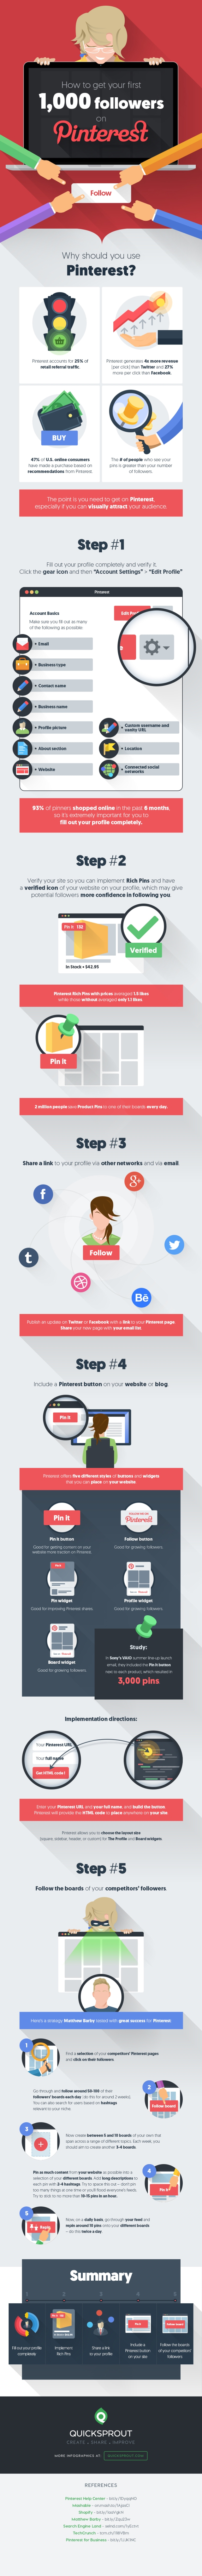 Do You Suck at Pinterest Here's How to Get Your First 1,000 Followers